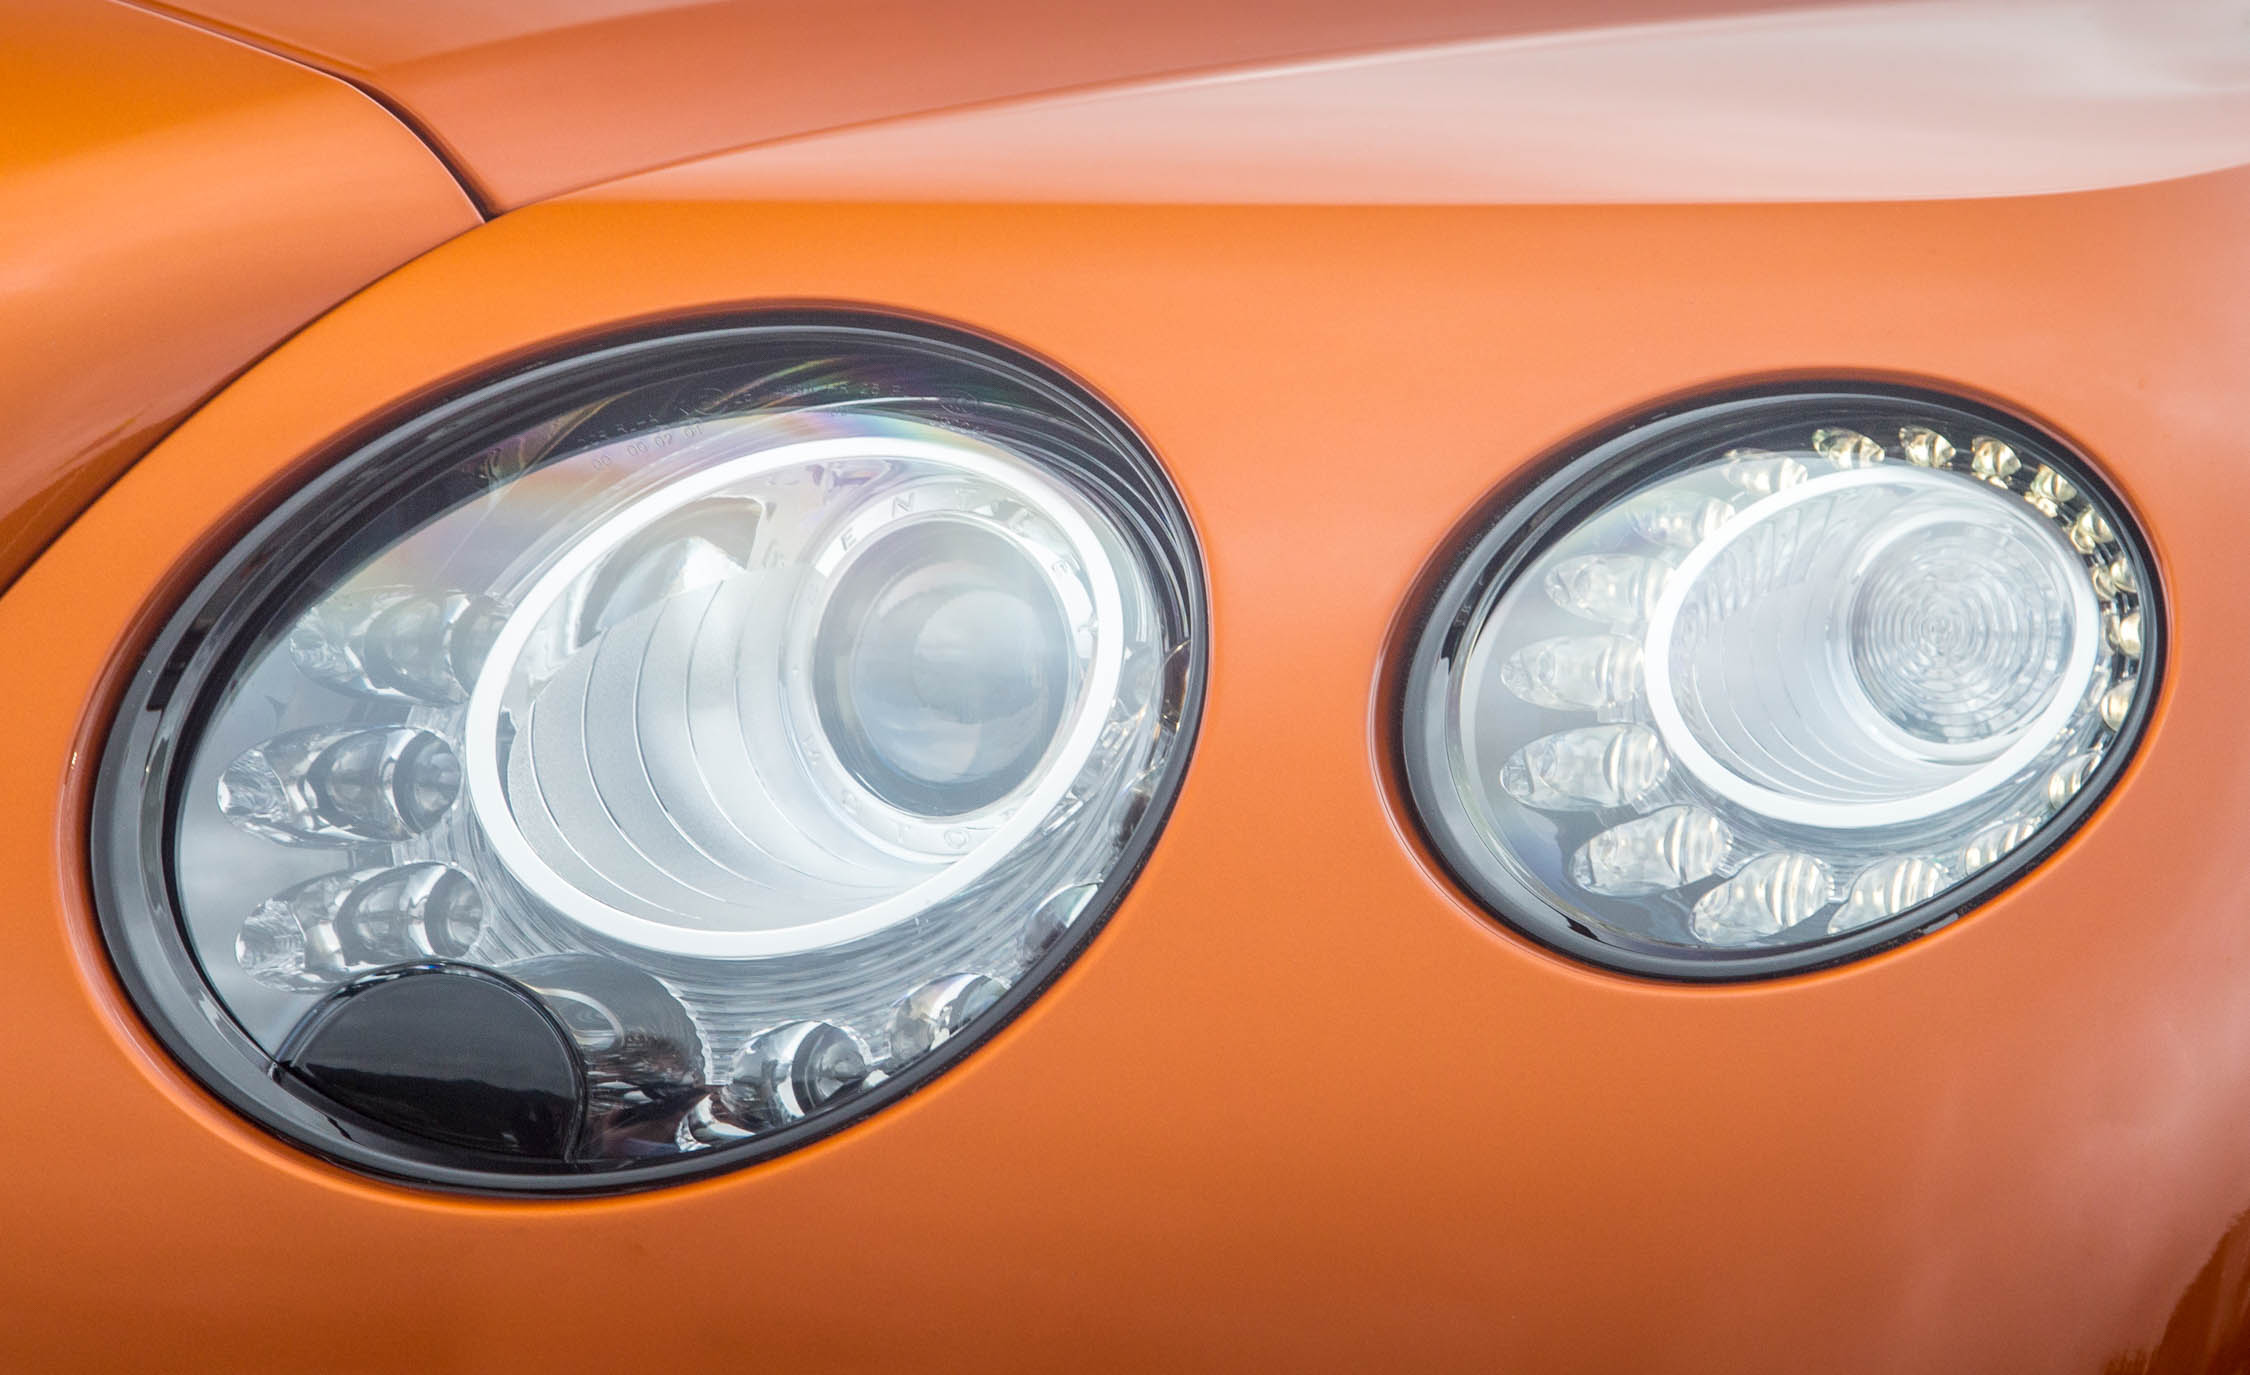 2018 Bentley Continental Supersports Convertible Exterior View Headlight (Photo 59 of 66)